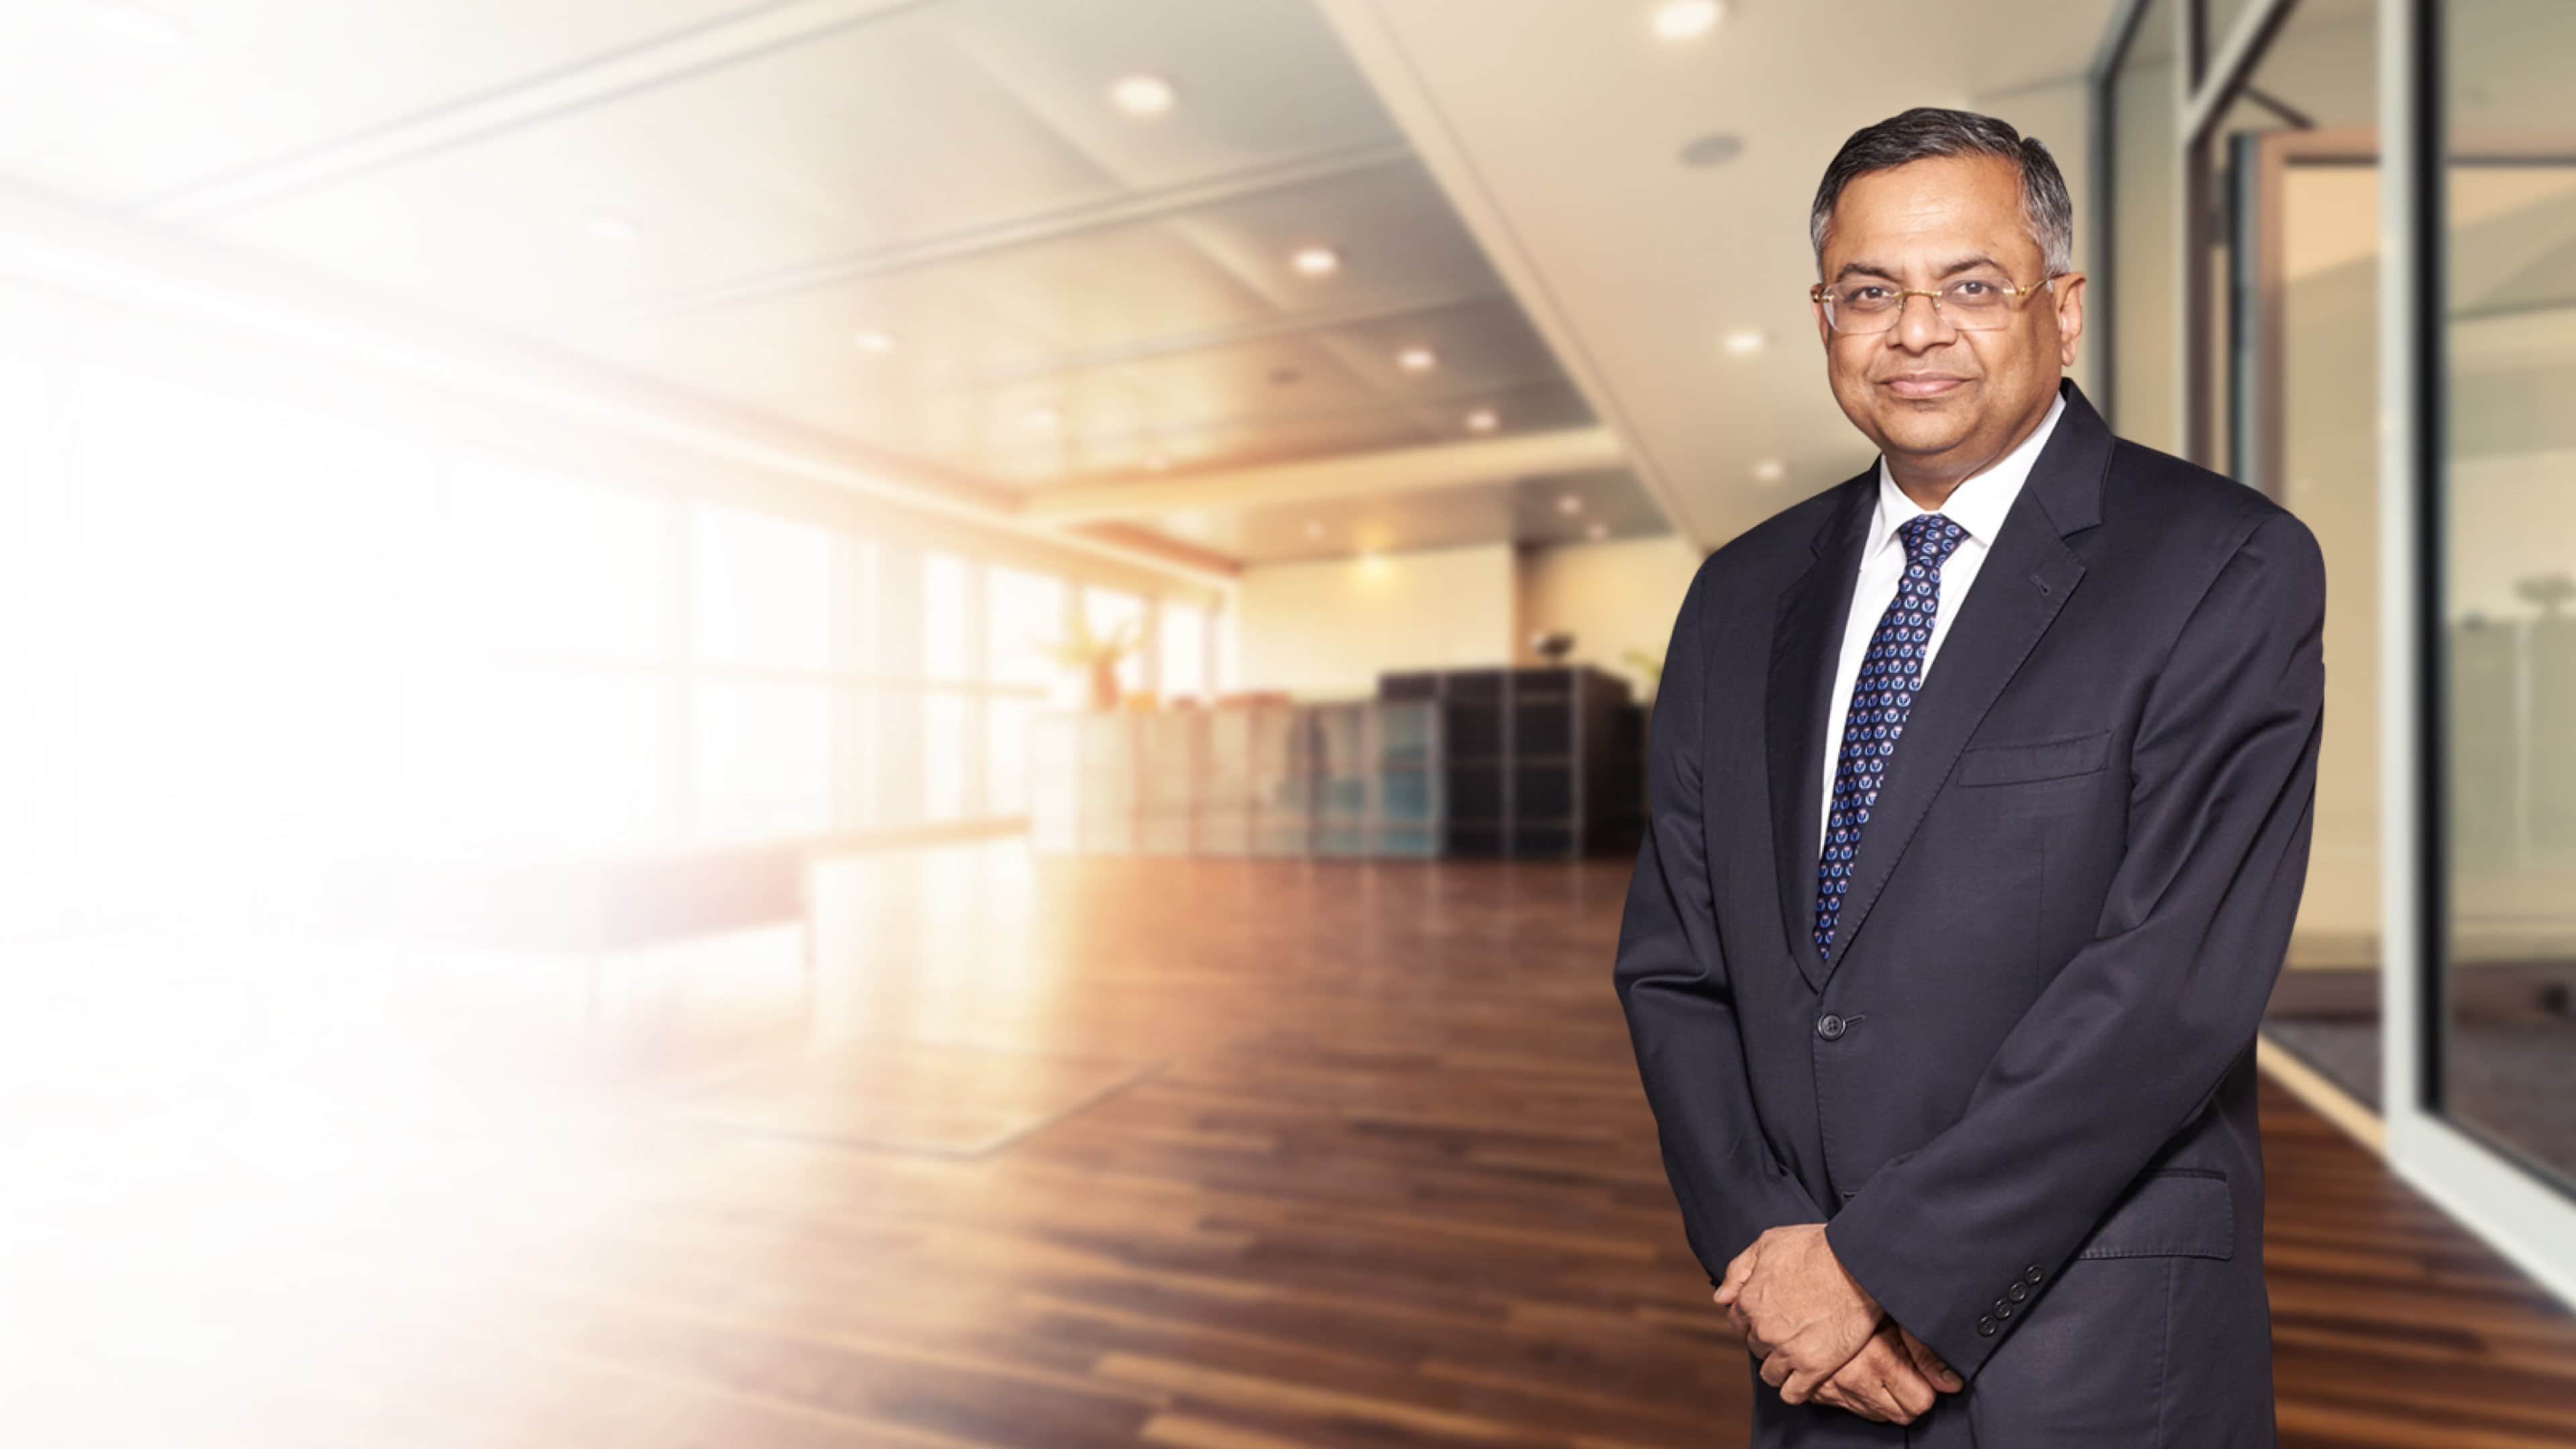 Natarajan Chandrasekaran - Chairman of the Board of Tata Sons